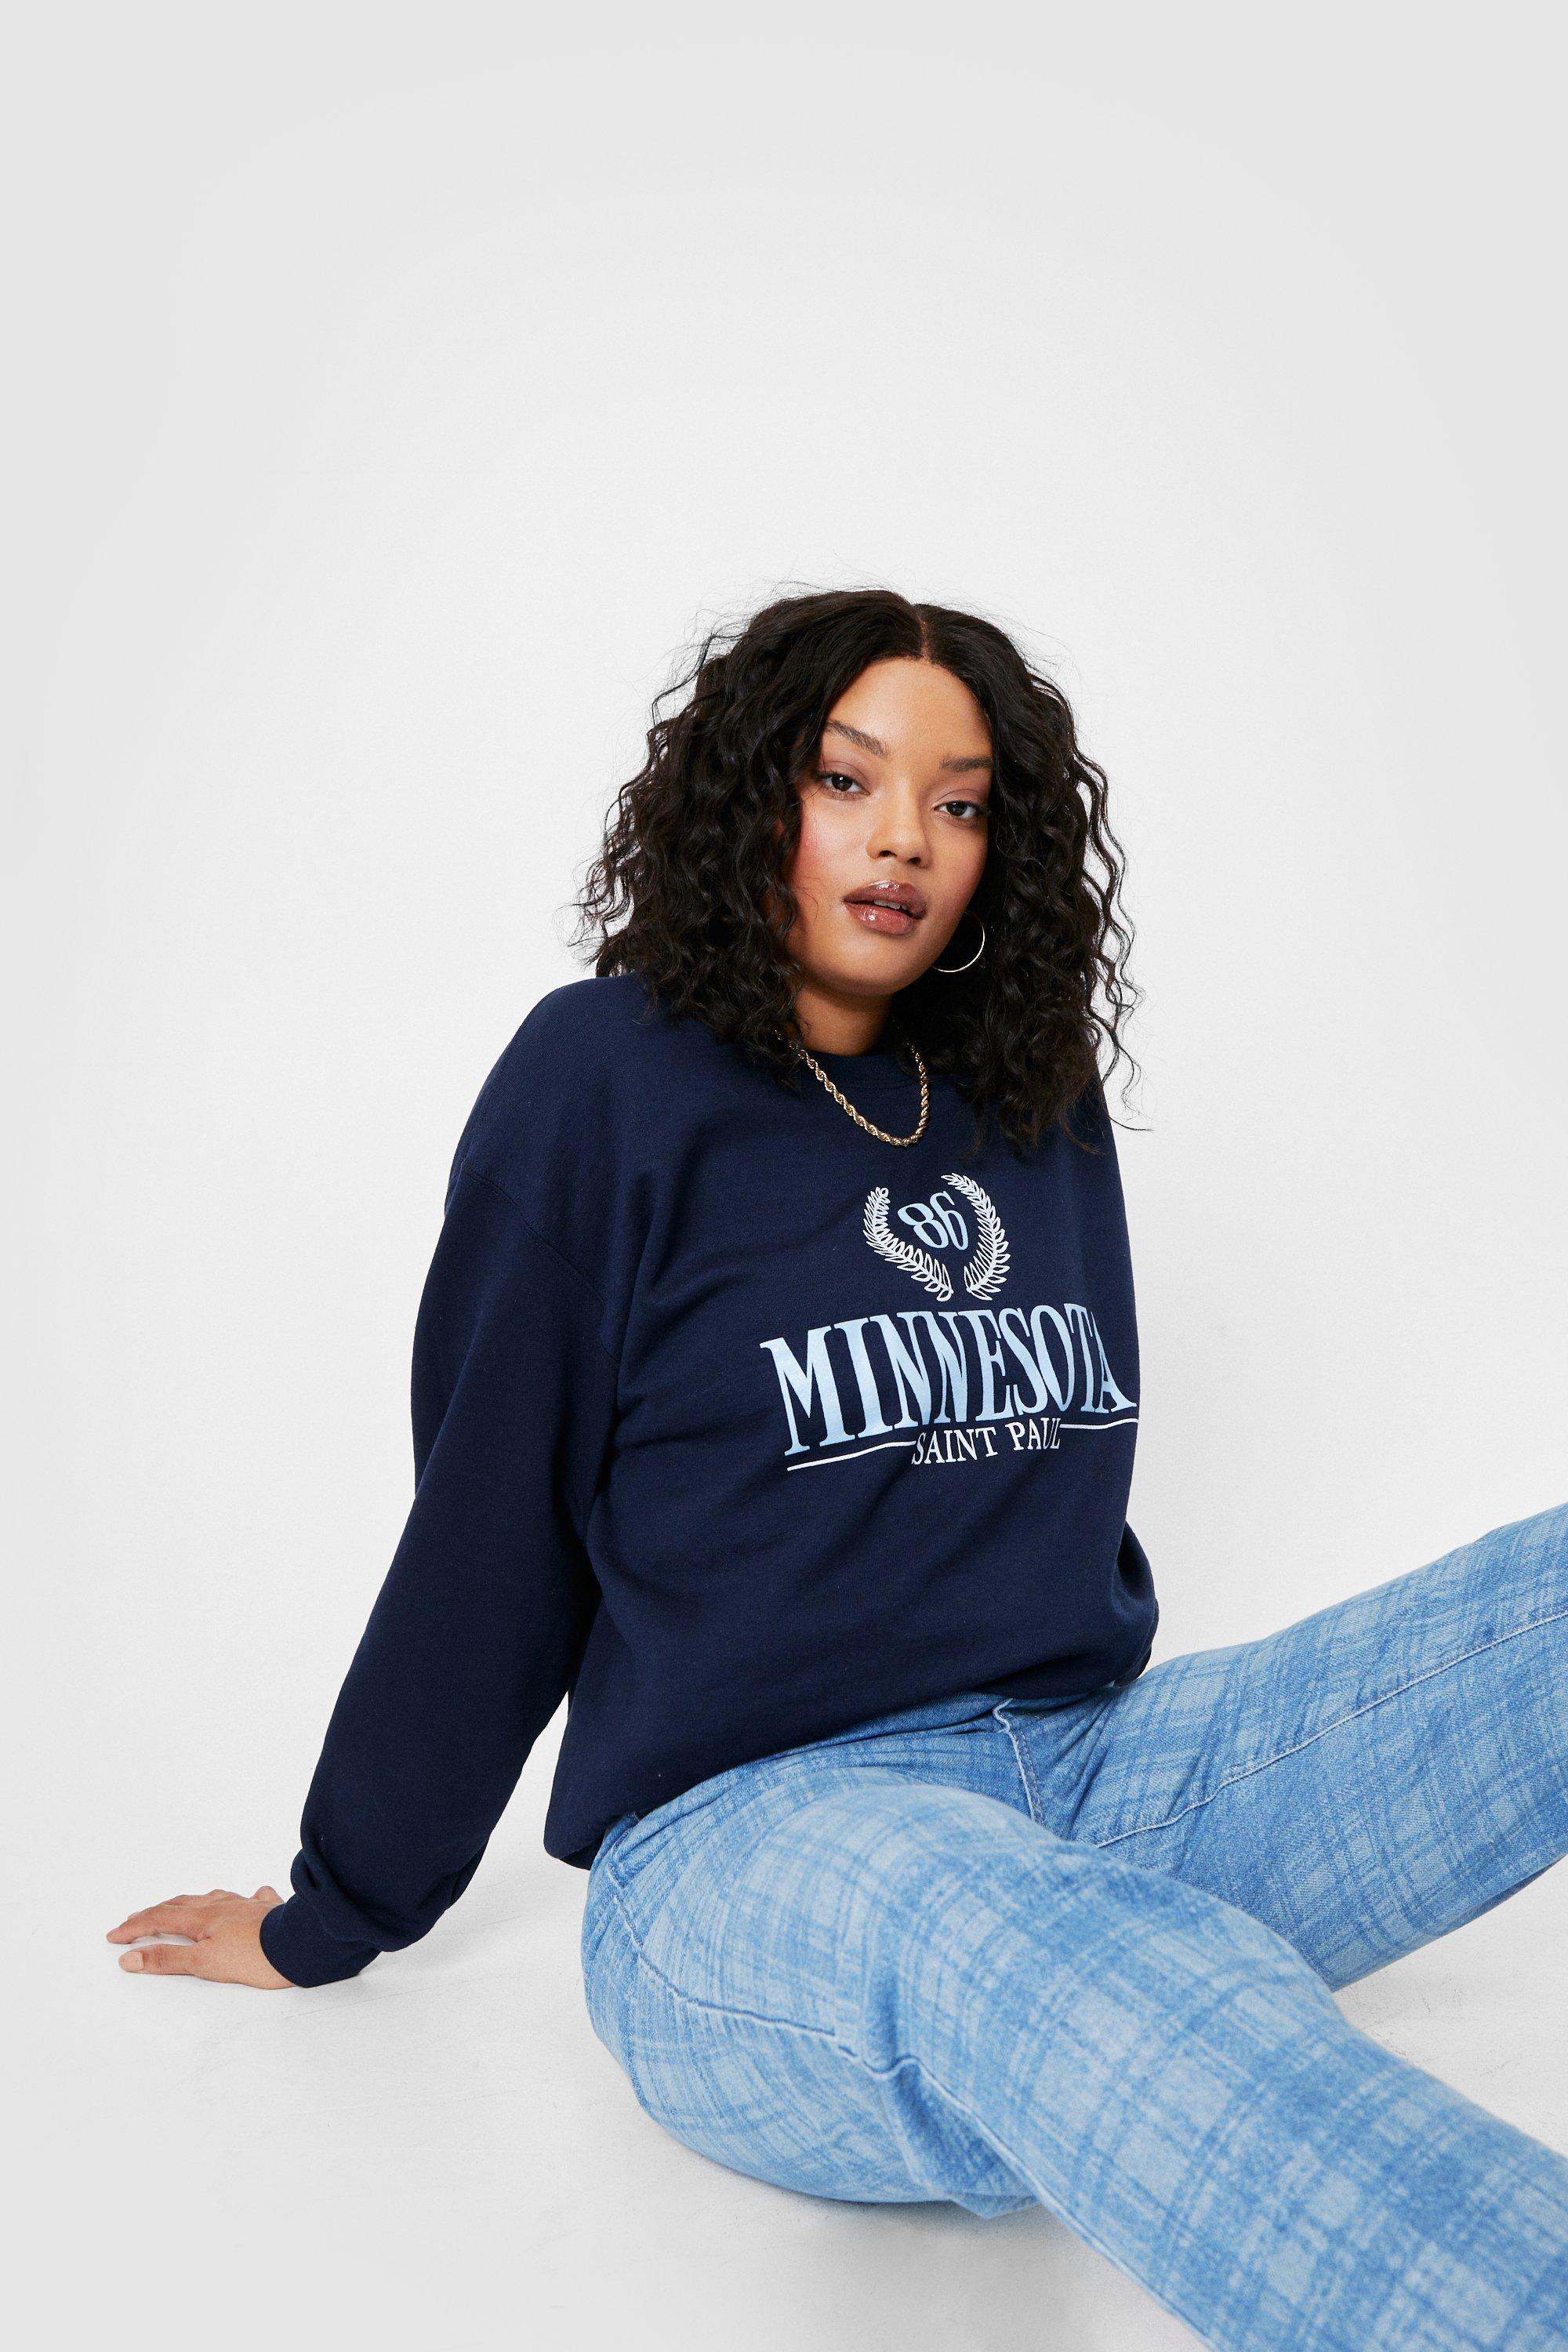 Plus Size Minnesota Slogan Sweat 19